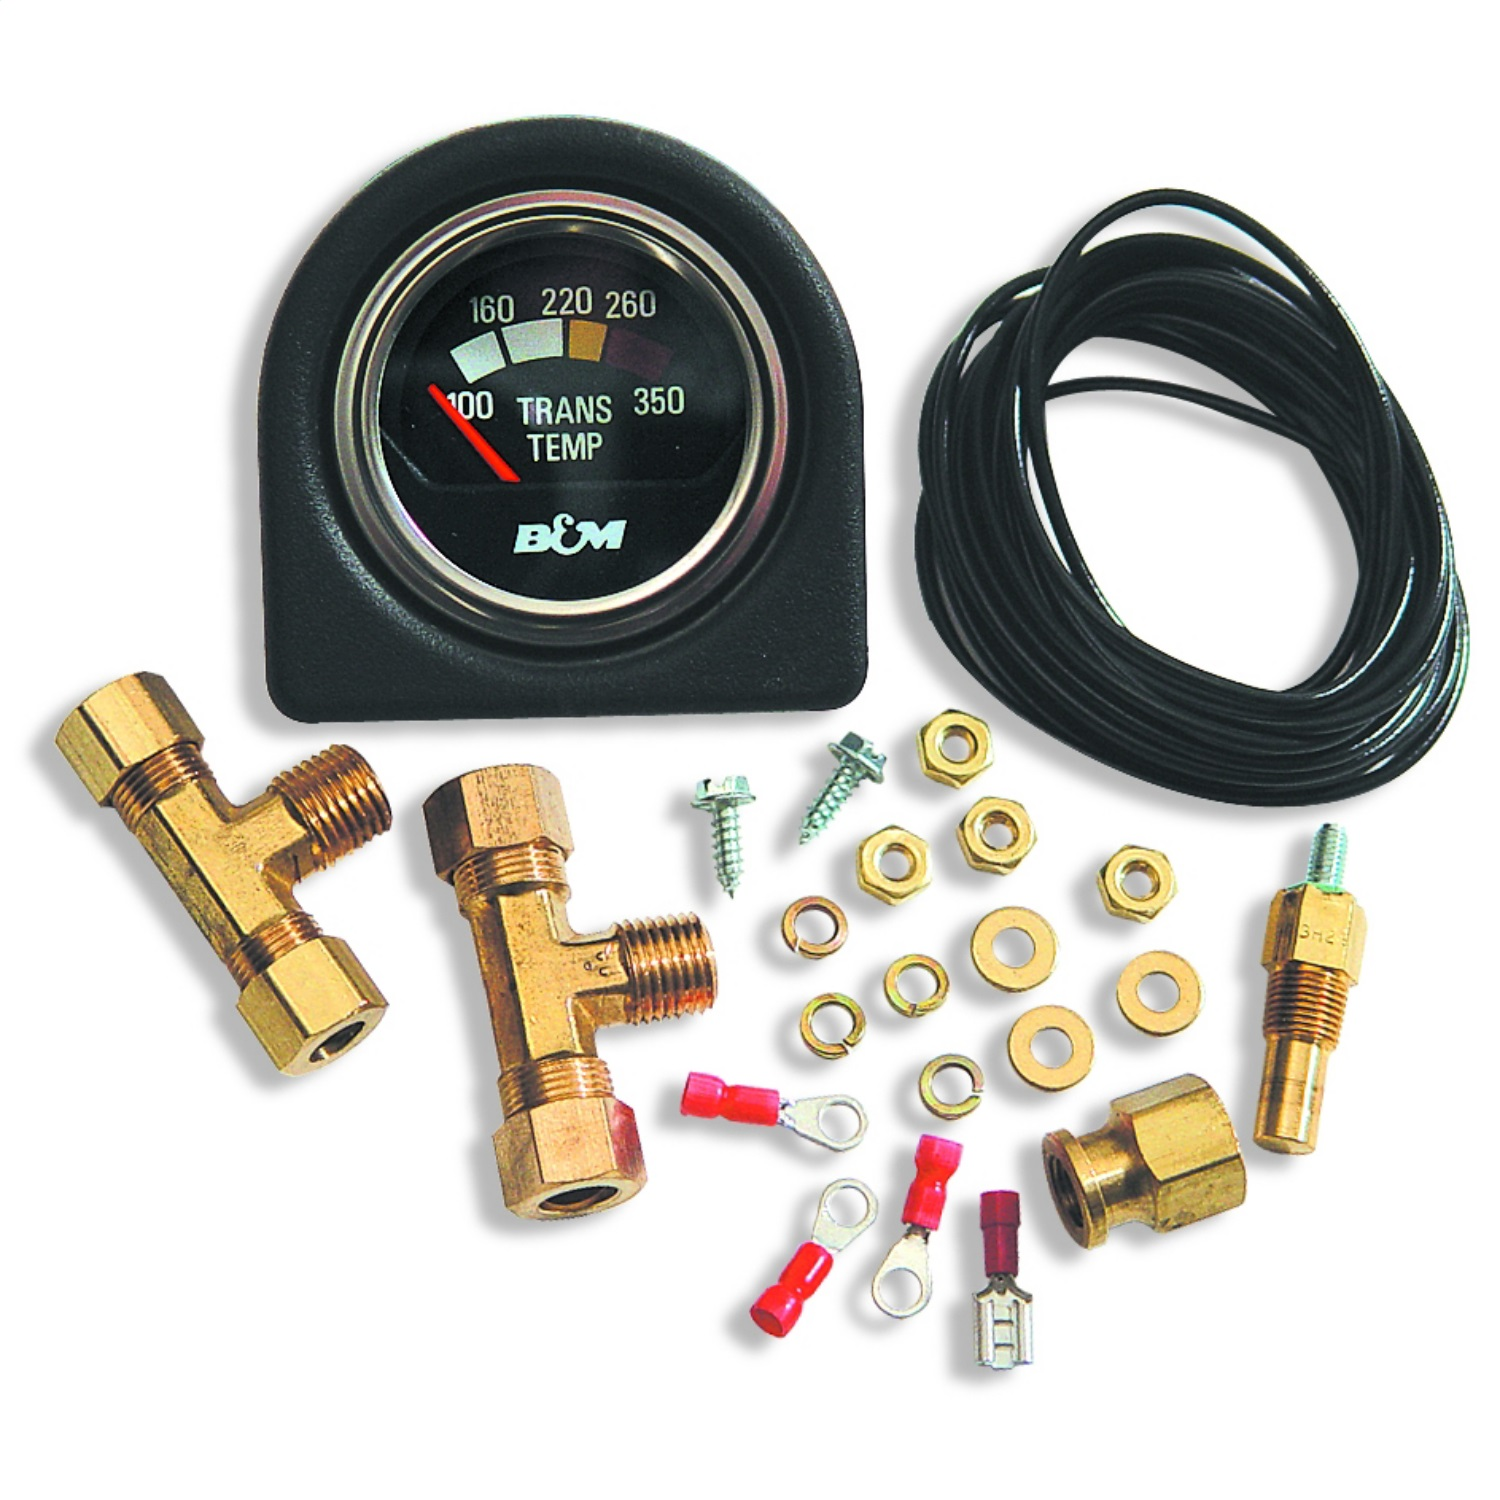 B&M 80212 TEMPERATURE GAUGE